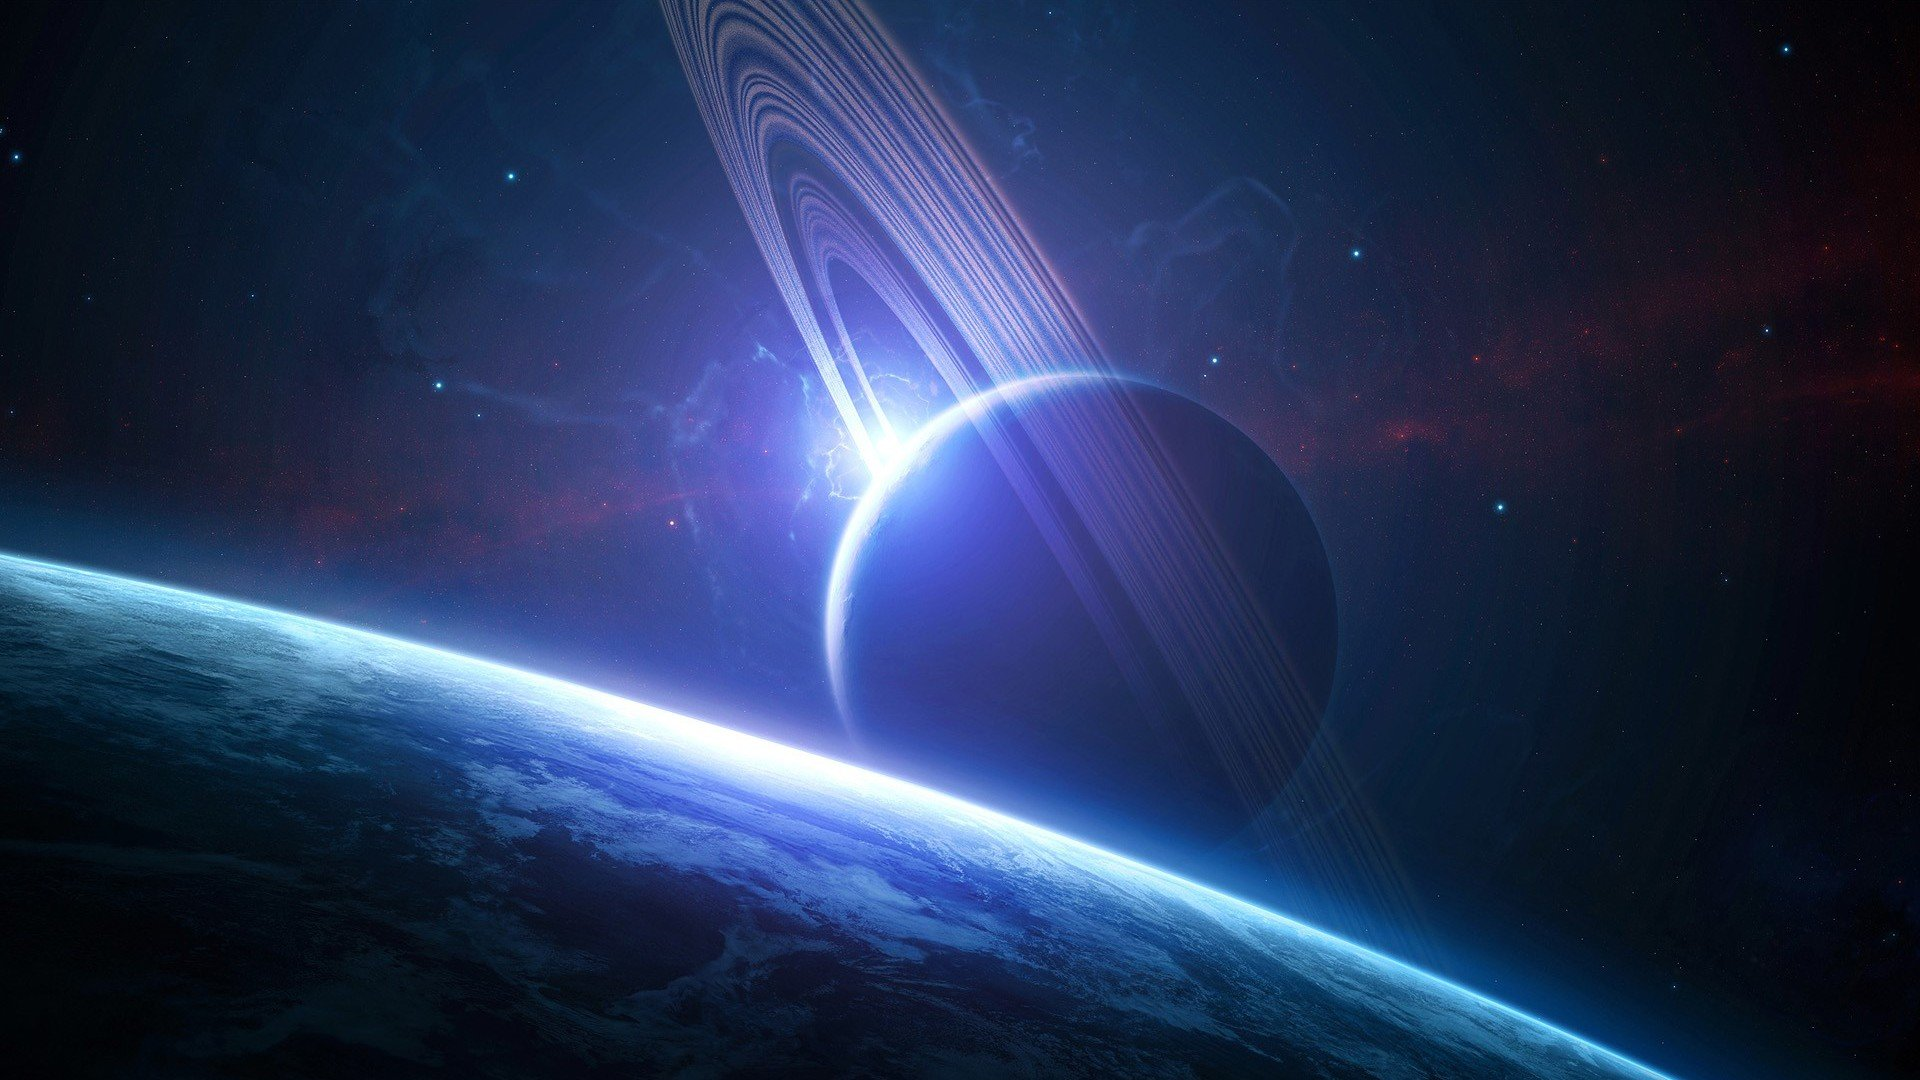 Download 1080p Planetary Ring desktop background ID:256566 for free